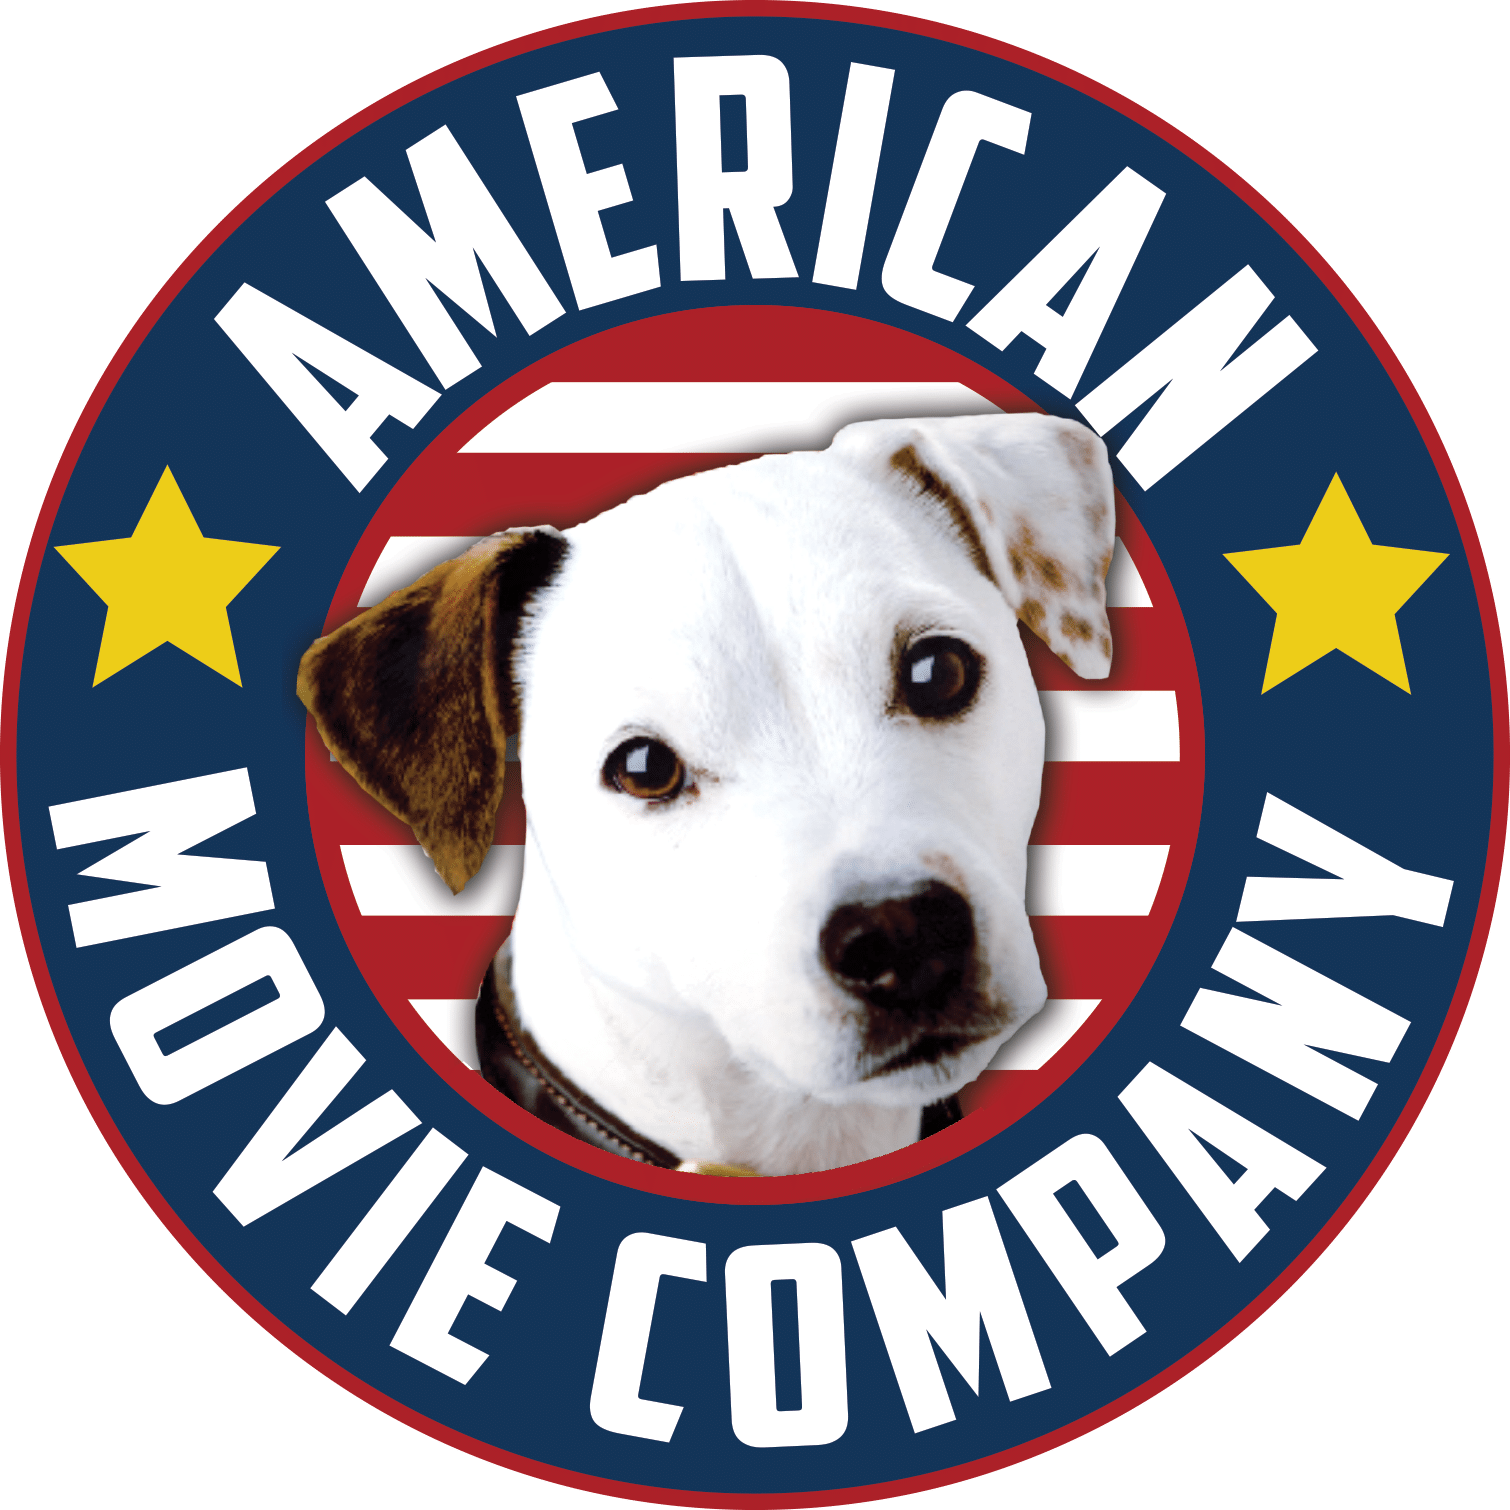 New American Movie Company logo Dog In Center